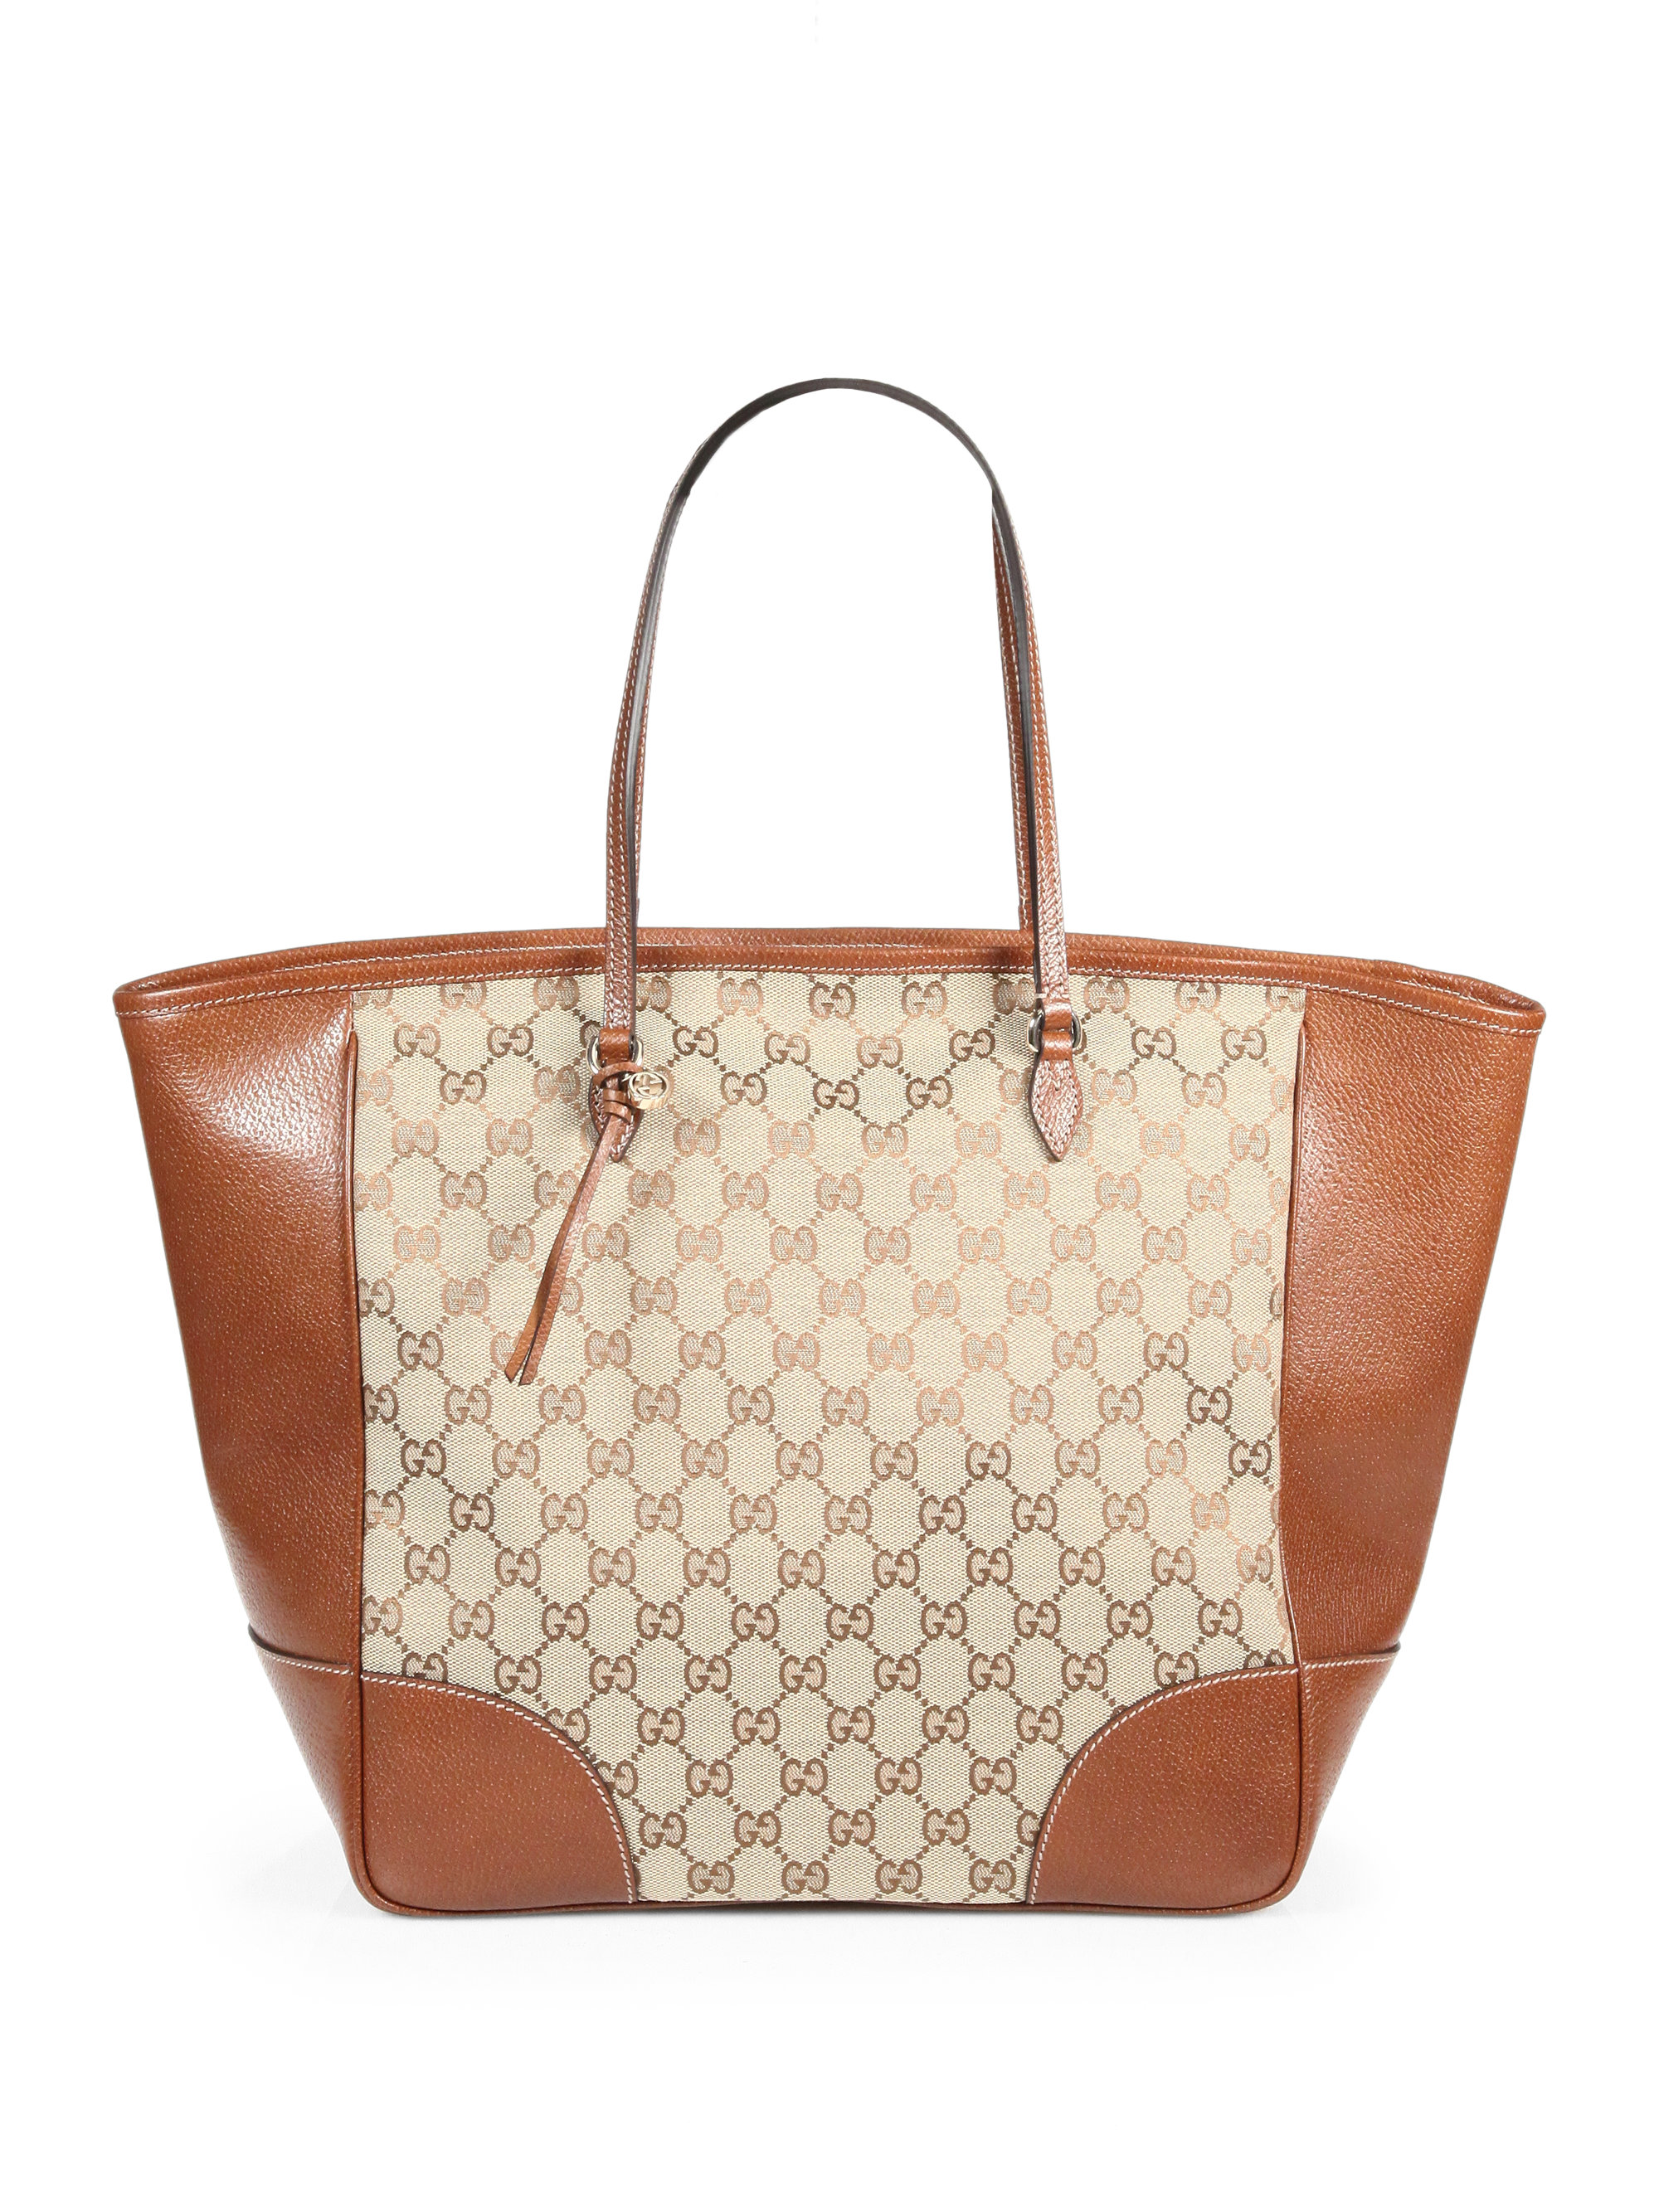 c9aaa2a6bdf Lyst - Gucci Bree Original GG Canvas Tote in Brown